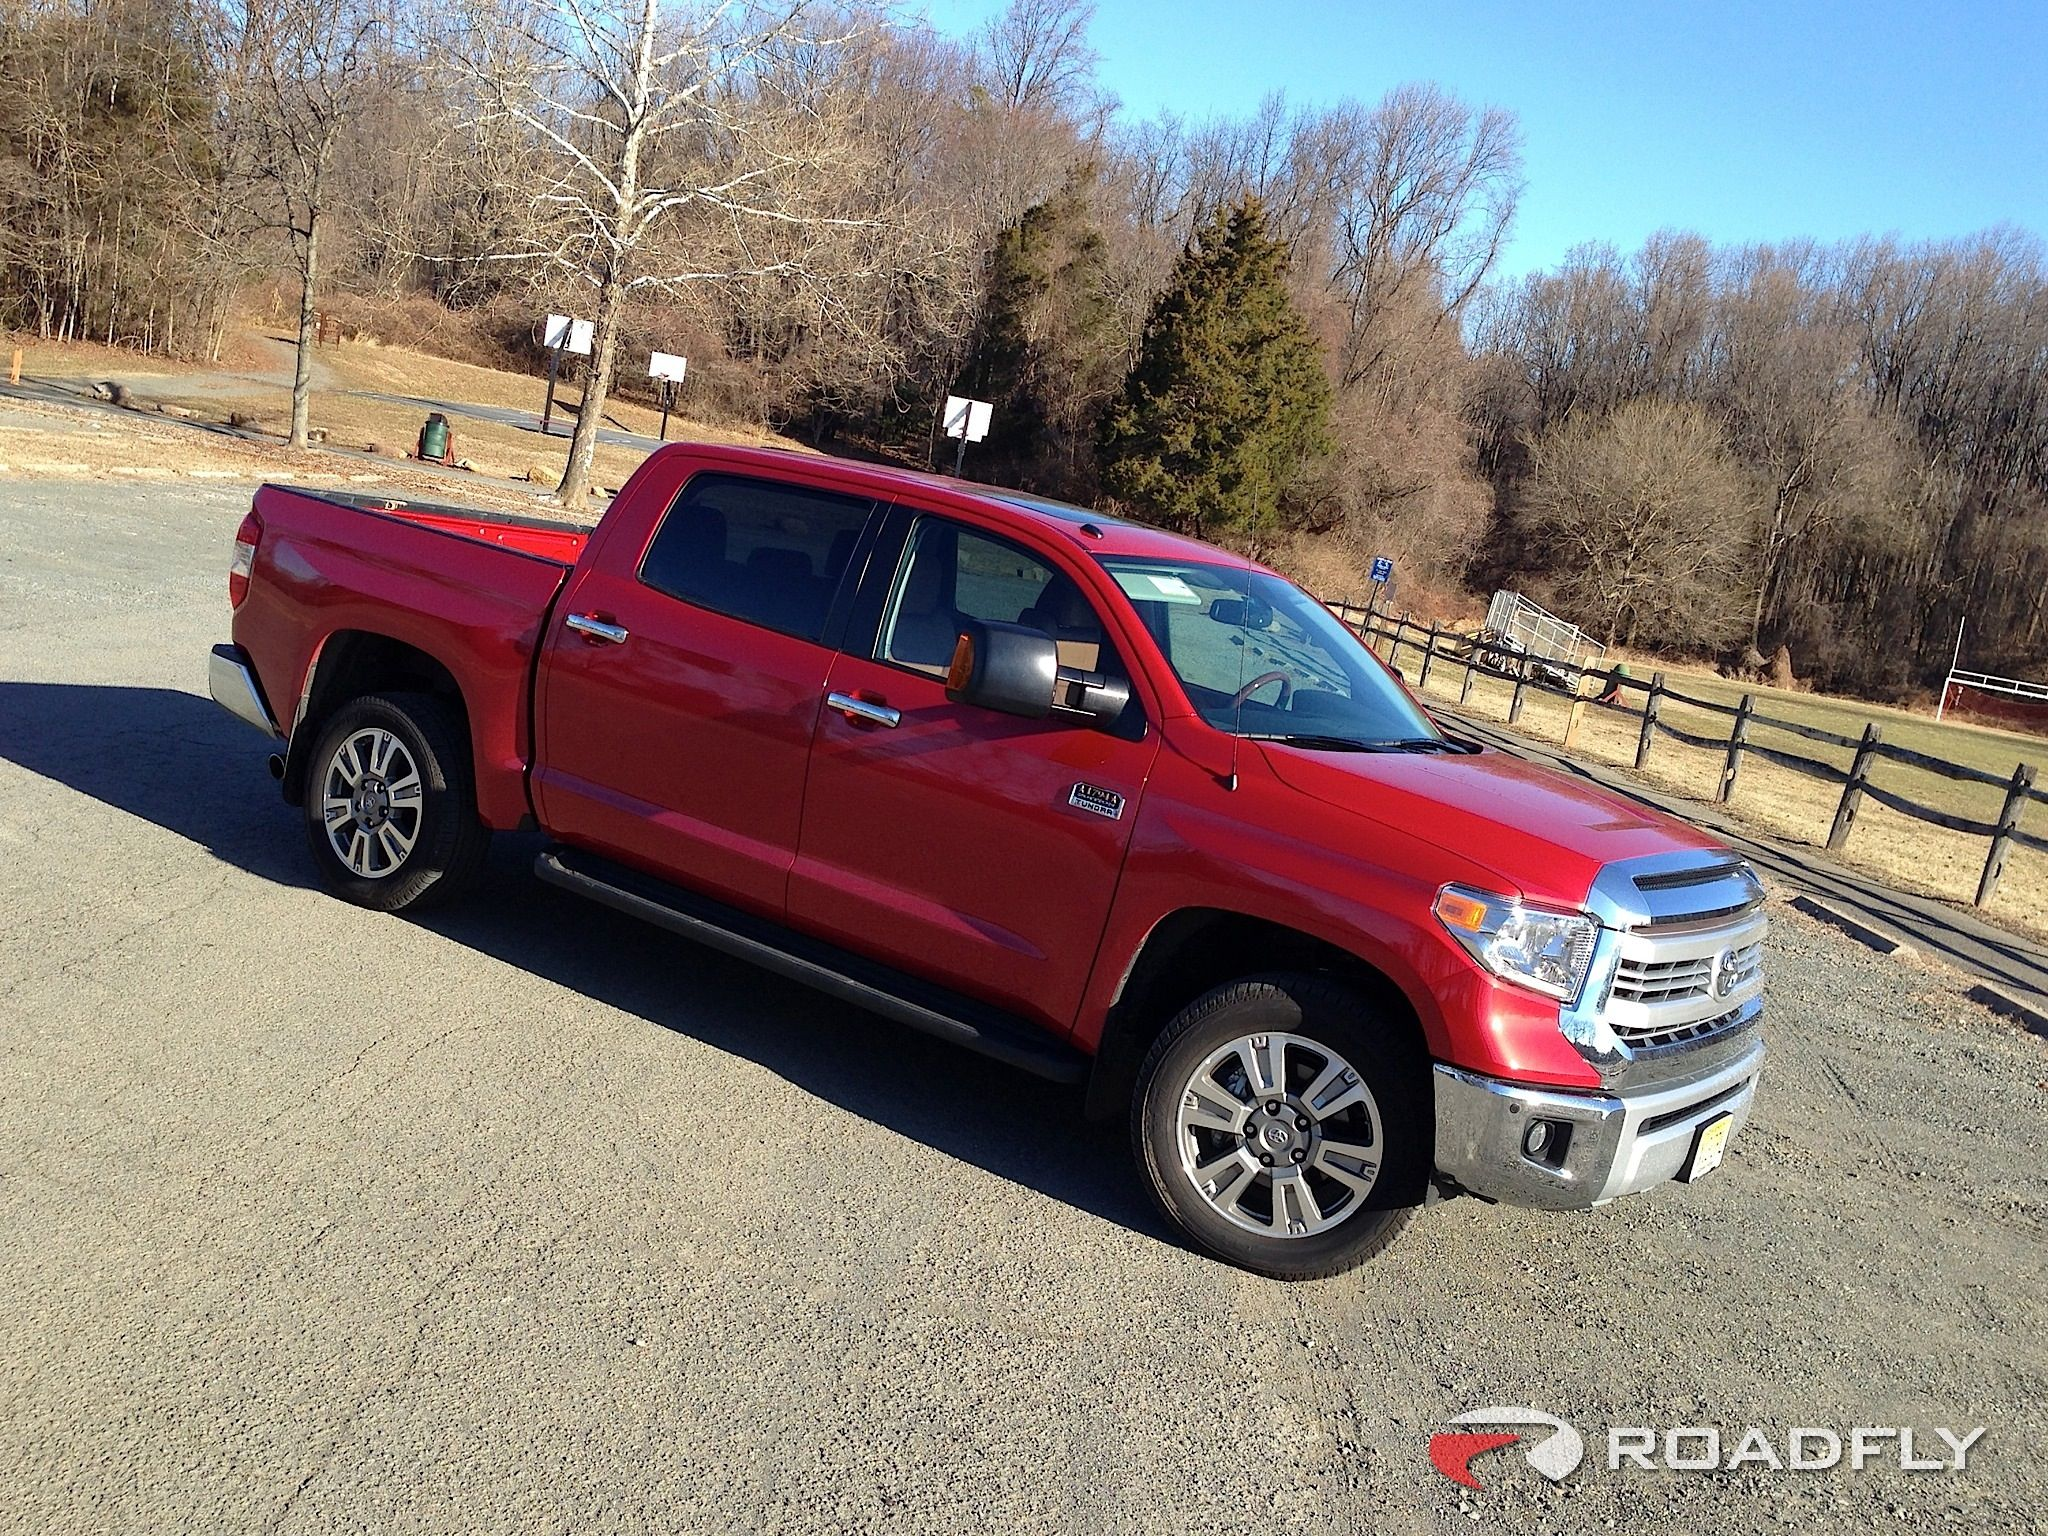 2014 Toyota Tundra Double Cab 1794 Edition Photo Gallery | Roadfly.com: Car Reviews & Road Tests